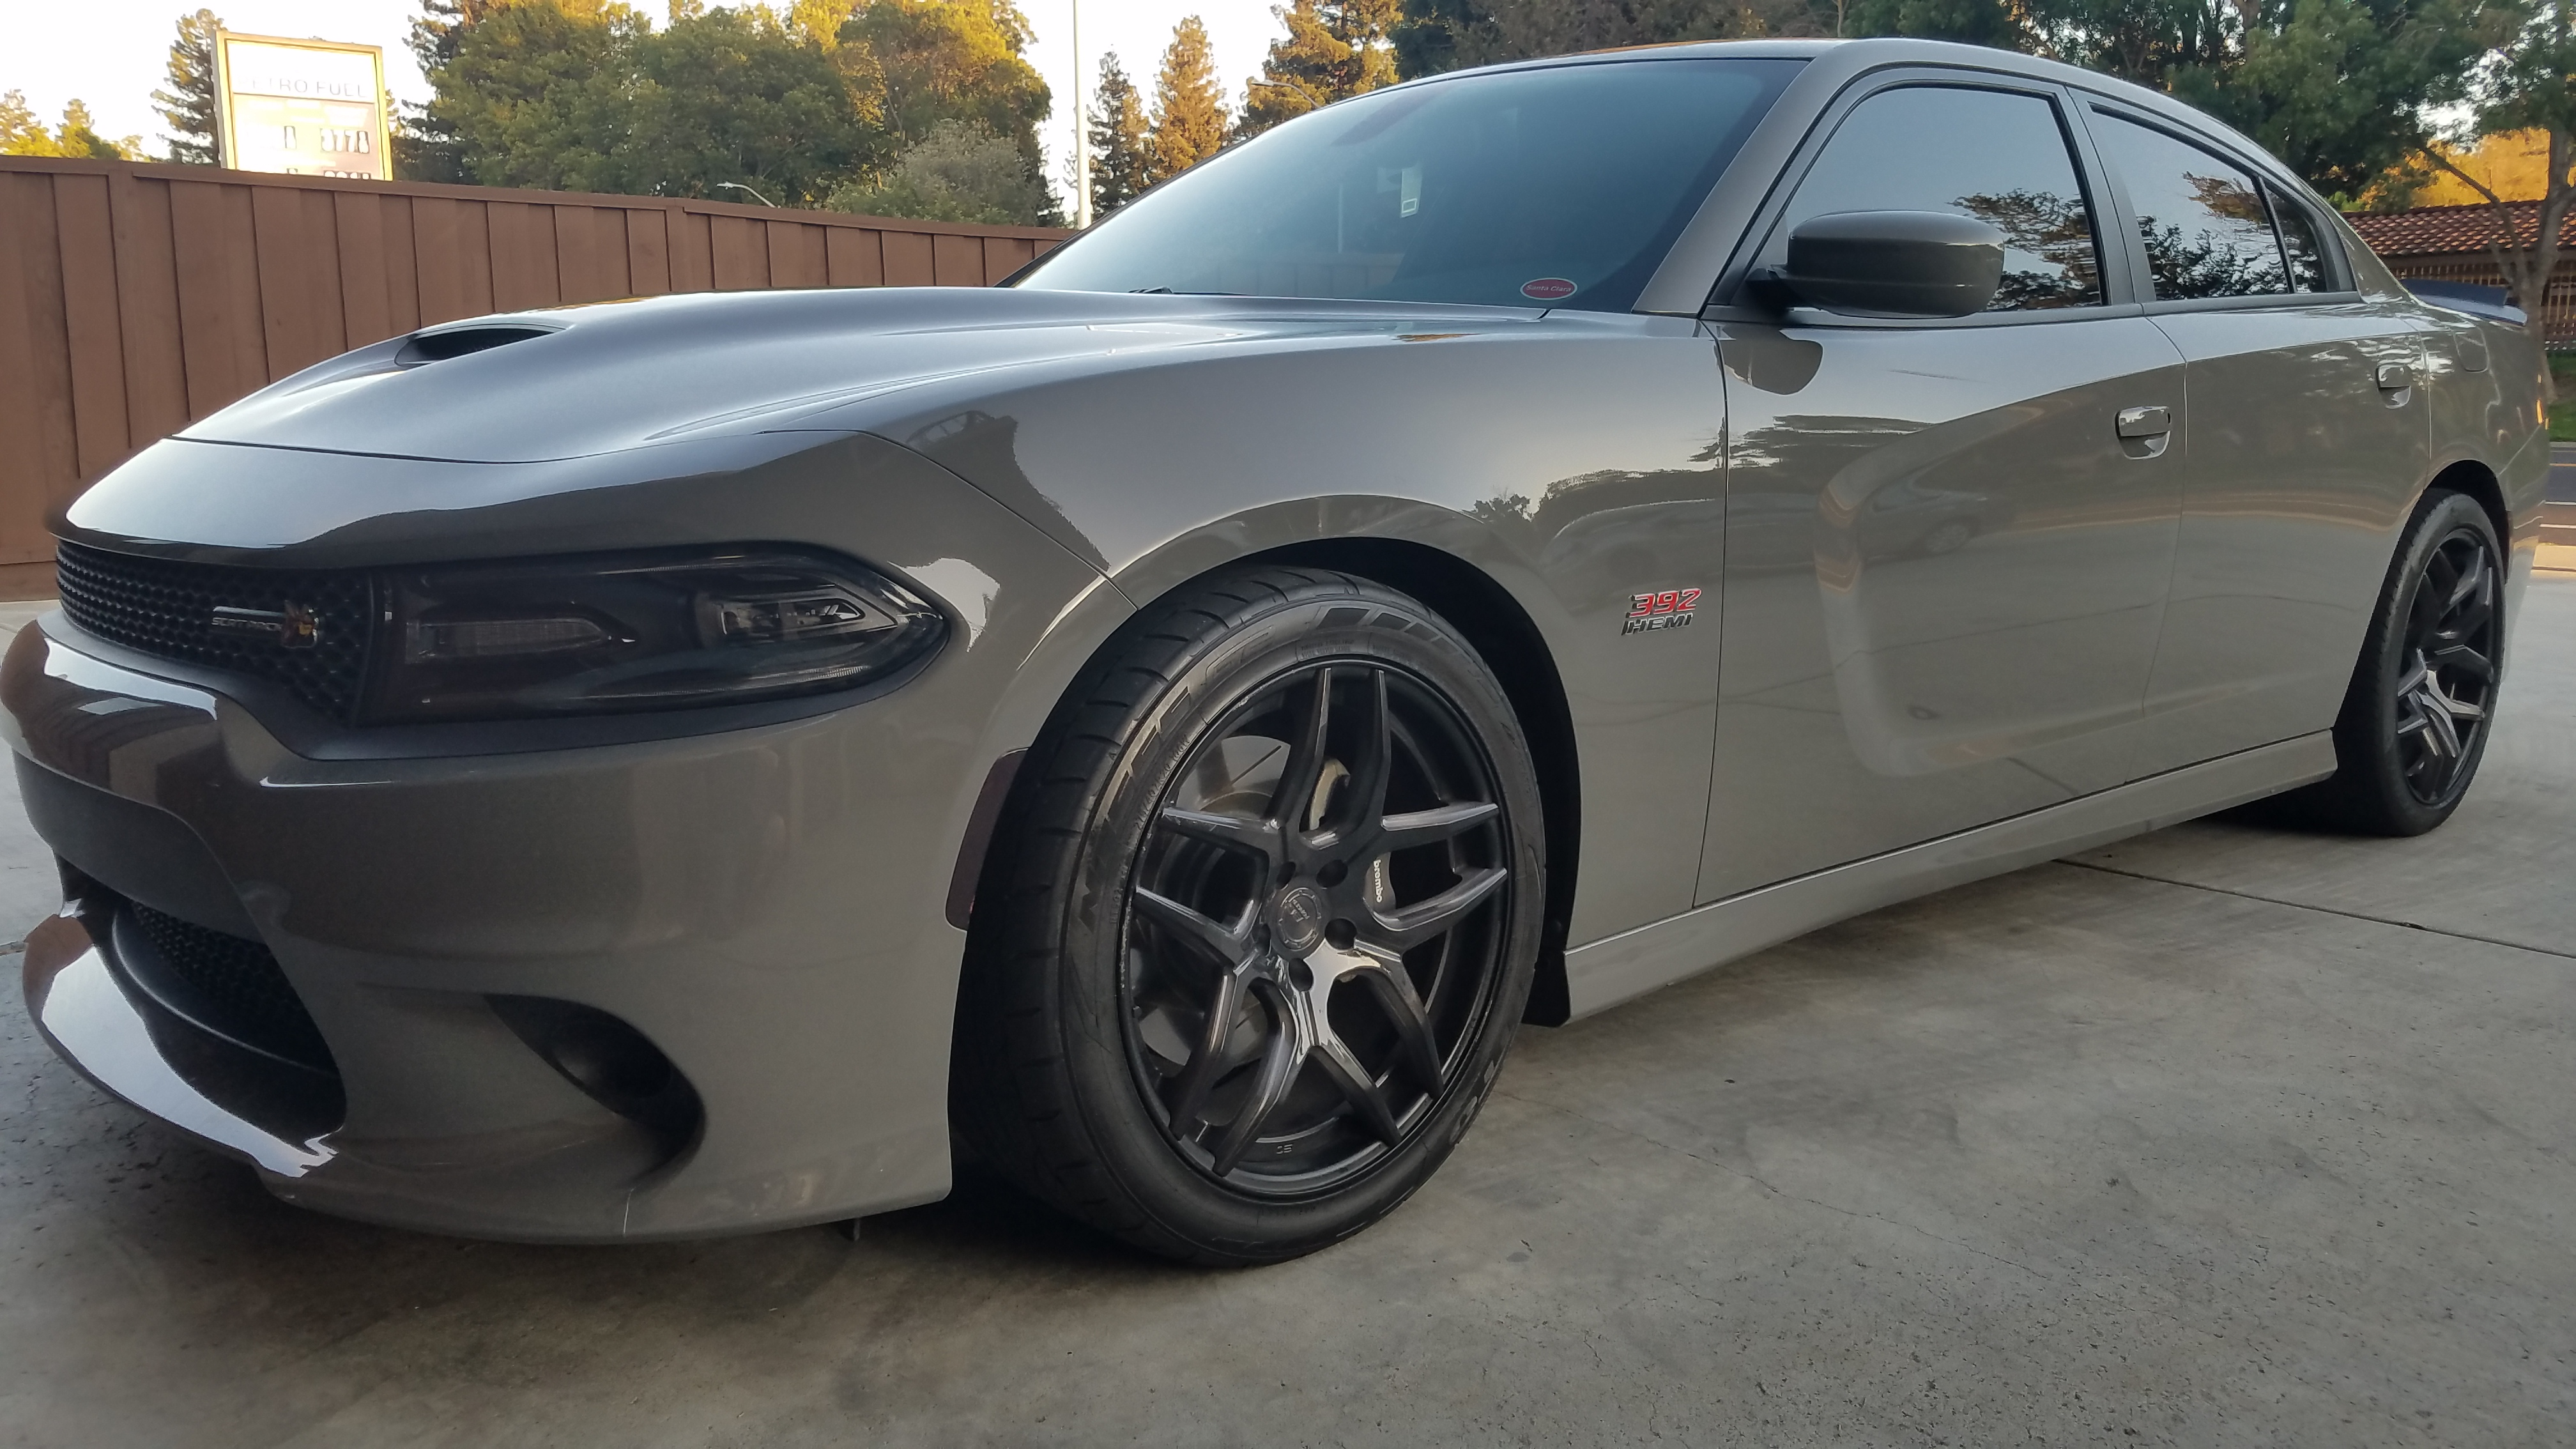 2018 Dodge Charger R/T Scat Pack - Angular Front View